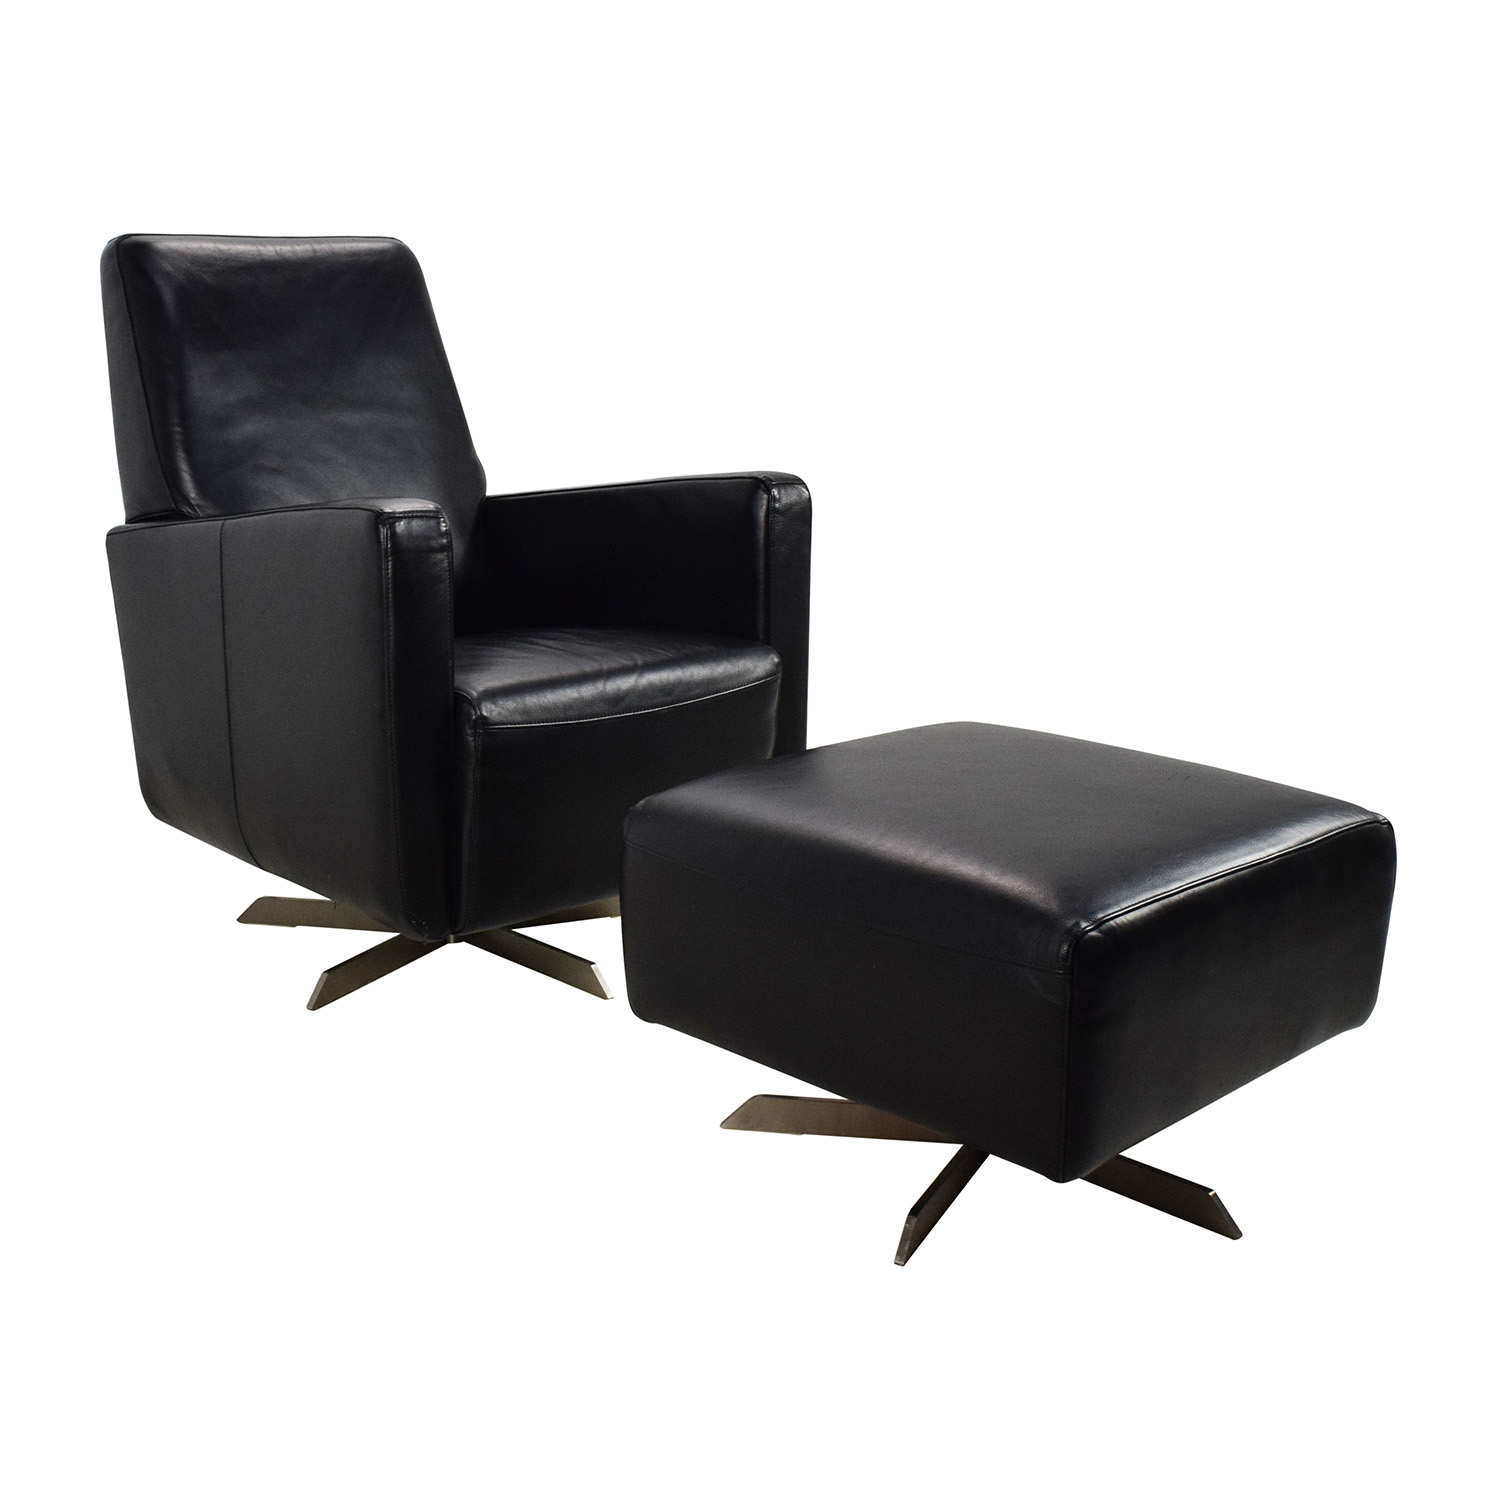 90% OFF   Natuzzi Natuzzi Black Leather Swivel Chair With Ottoman / Chairs